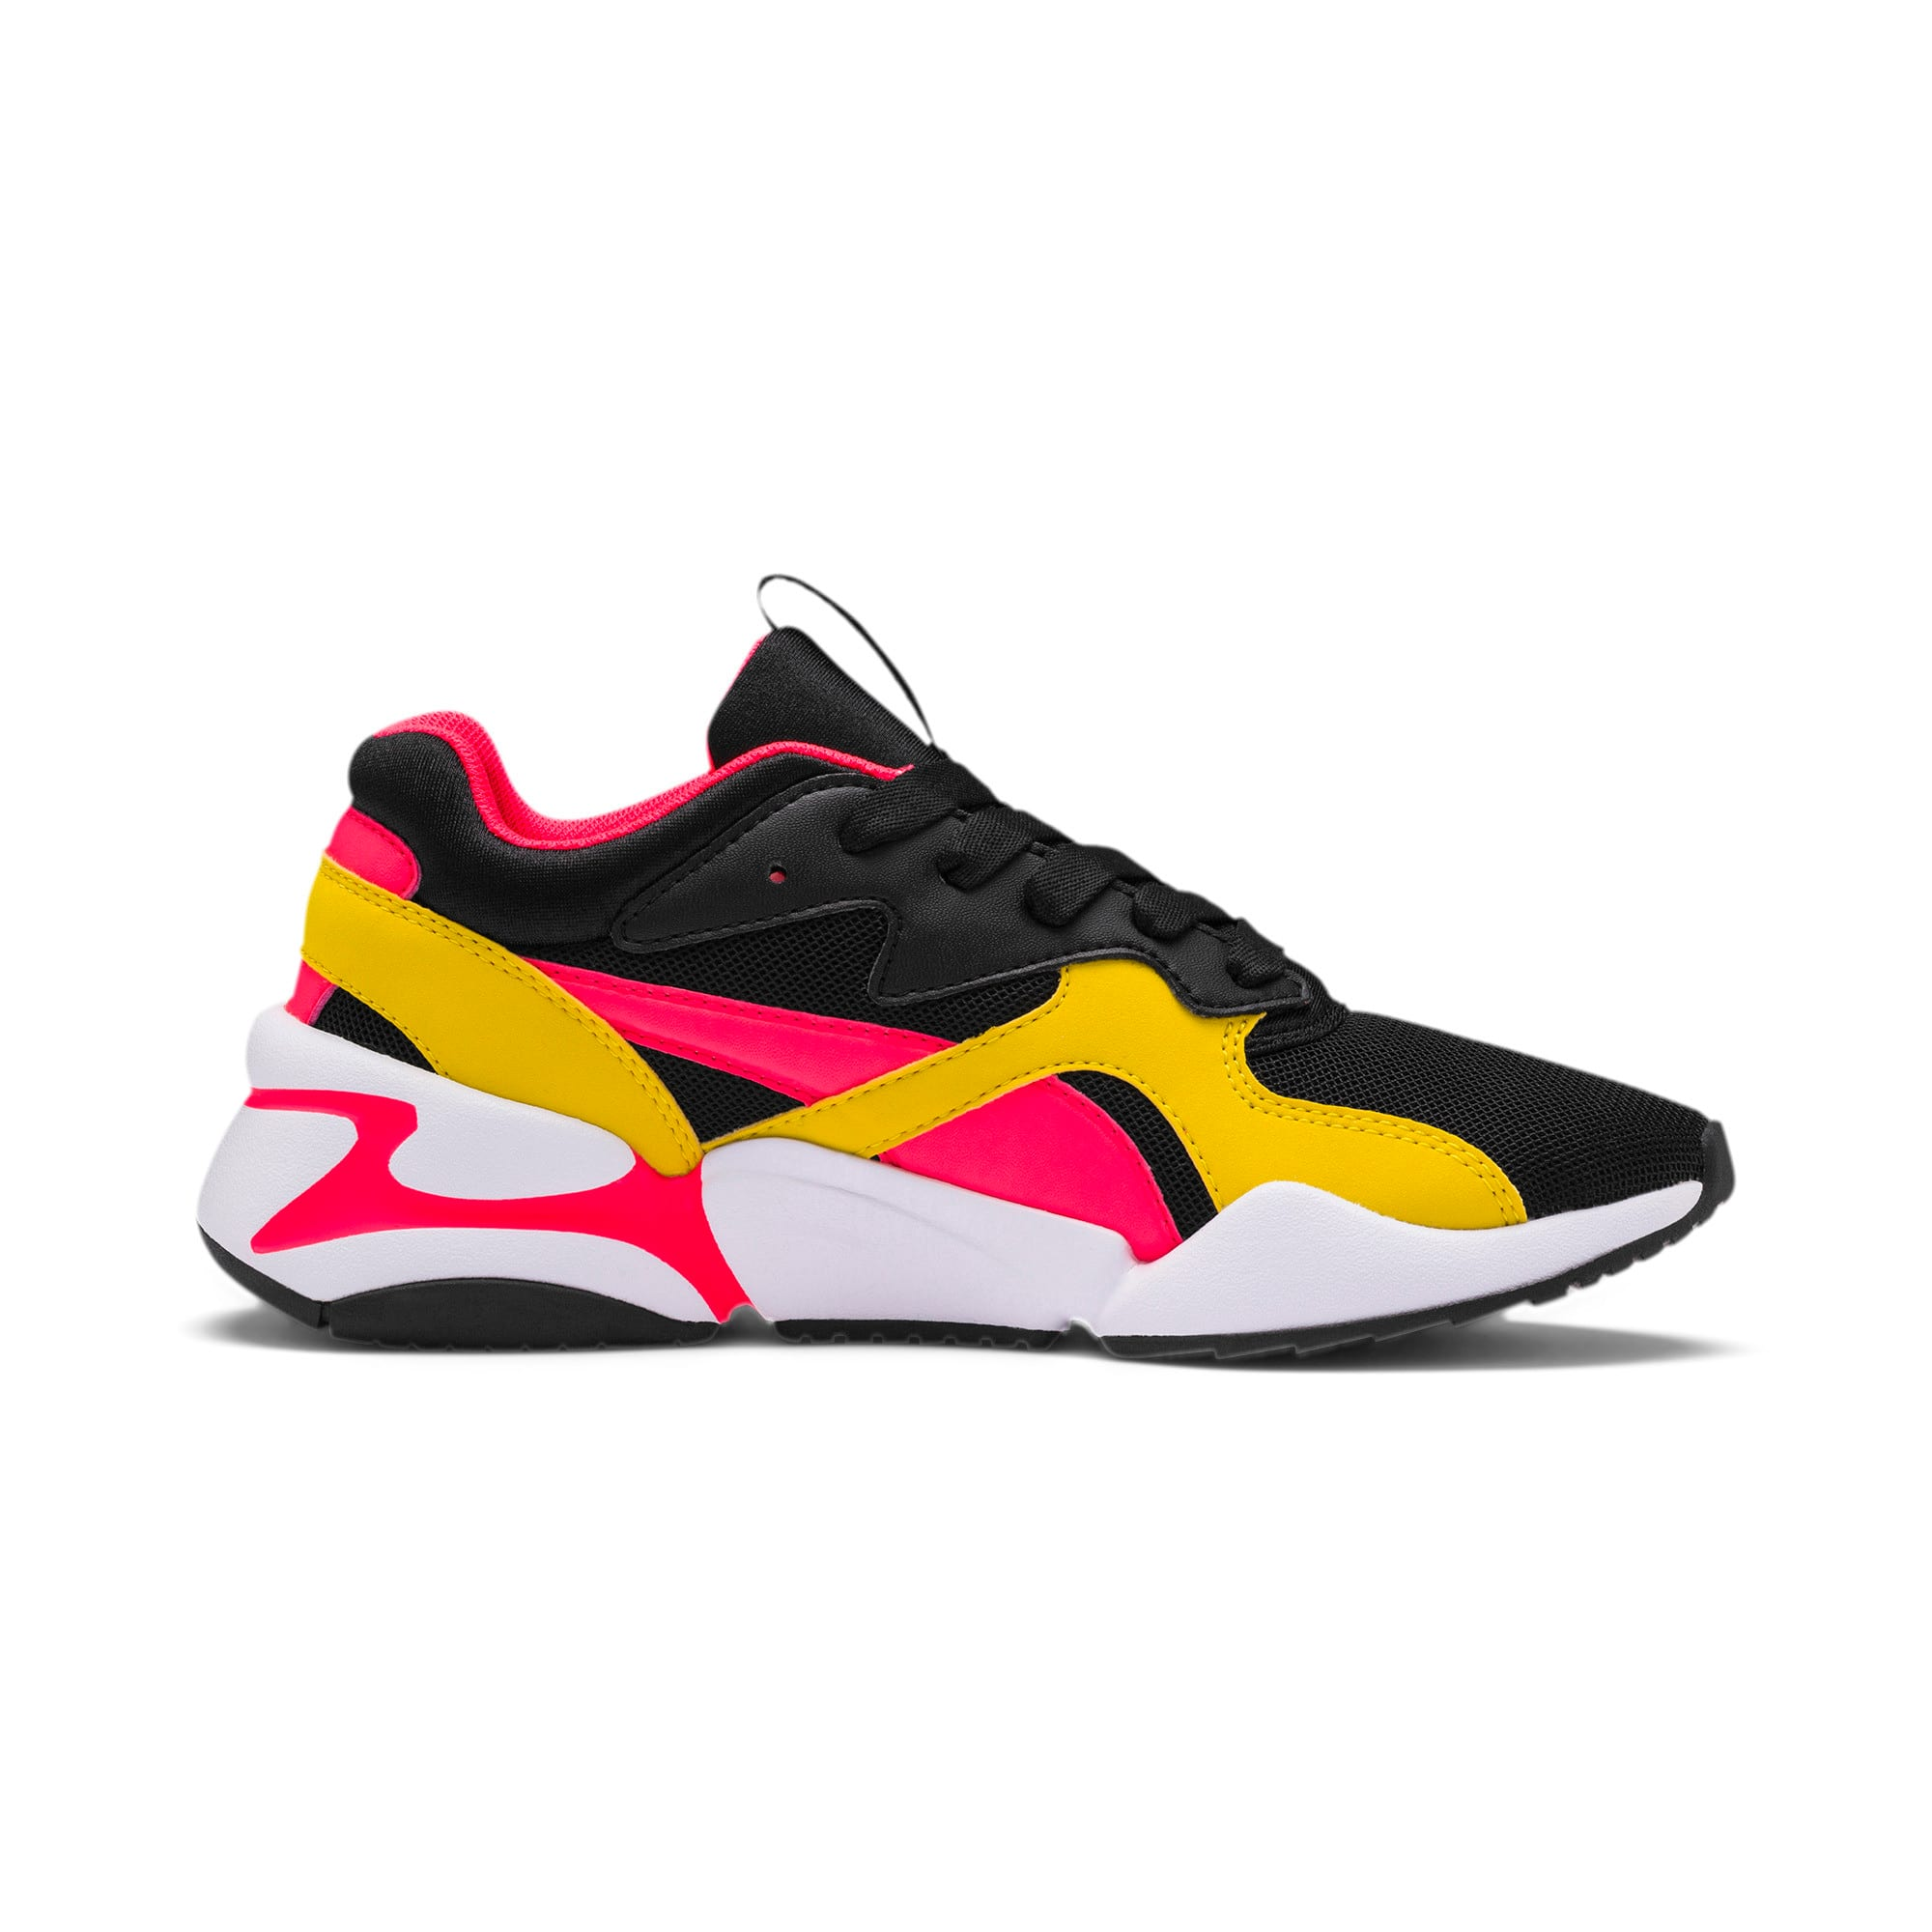 Thumbnail 5 of Nova Funky Youth Trainers, Puma Black-Sulphur, medium